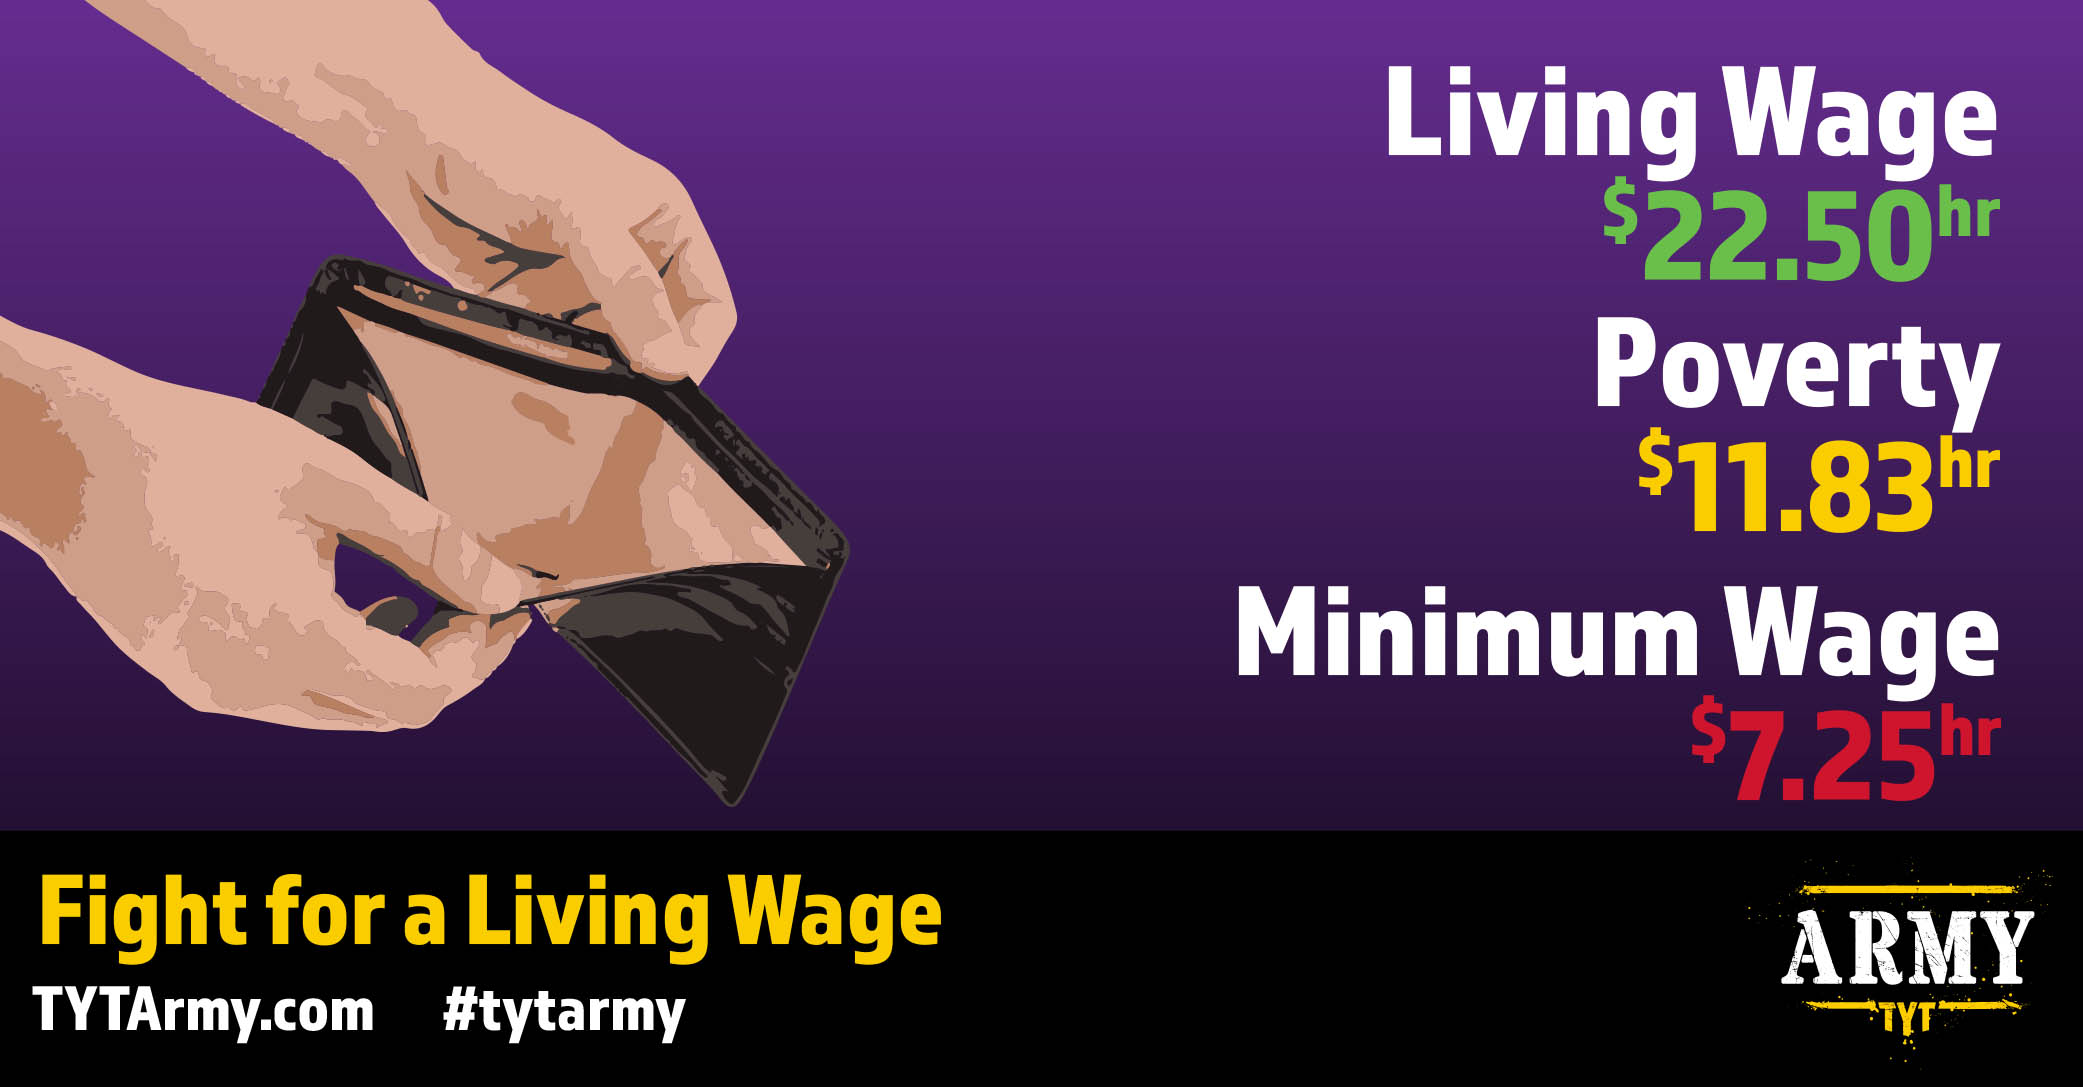 Minimum Wage vs. Living Wage: Your Presidential Candidate's Stance